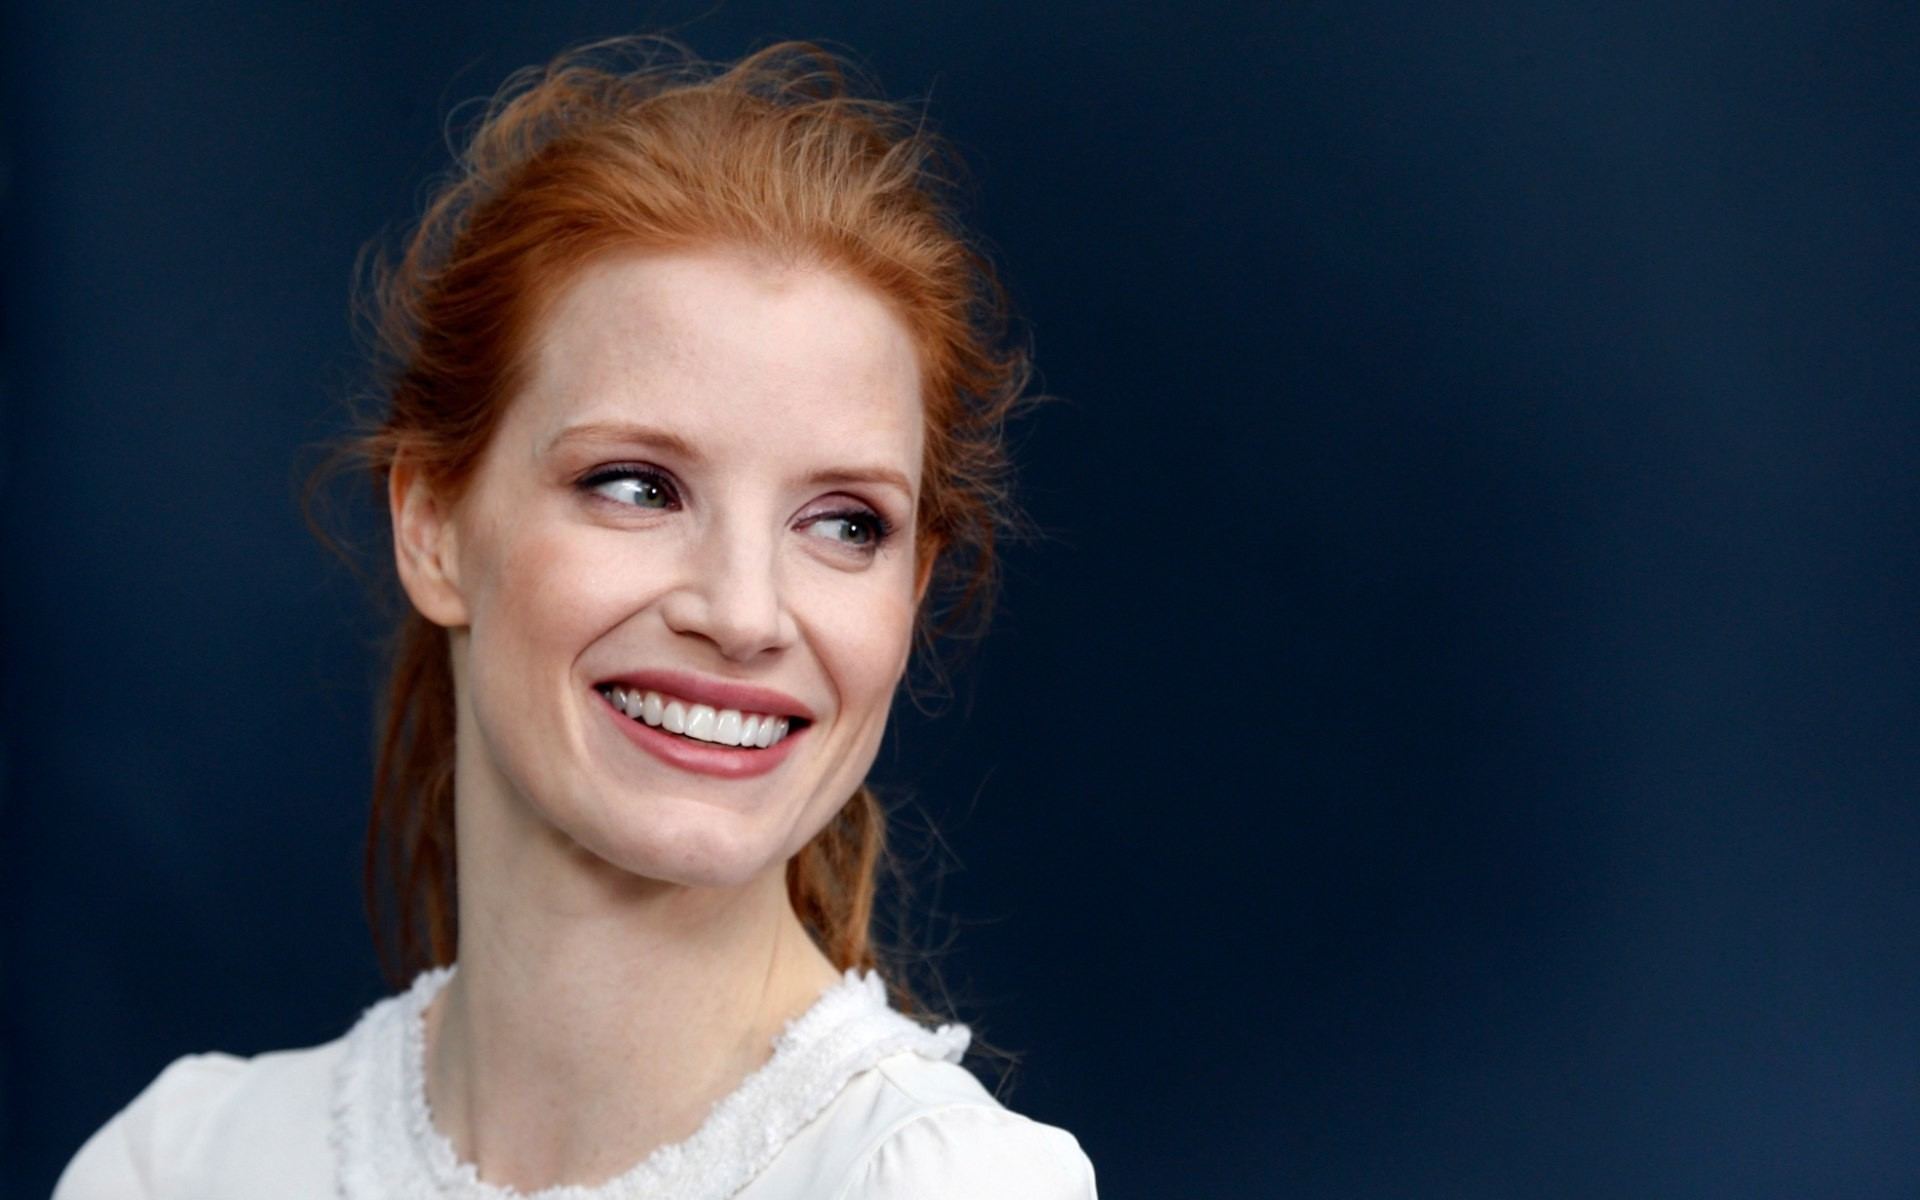 1920x1200 - Jessica Chastain Wallpapers 19